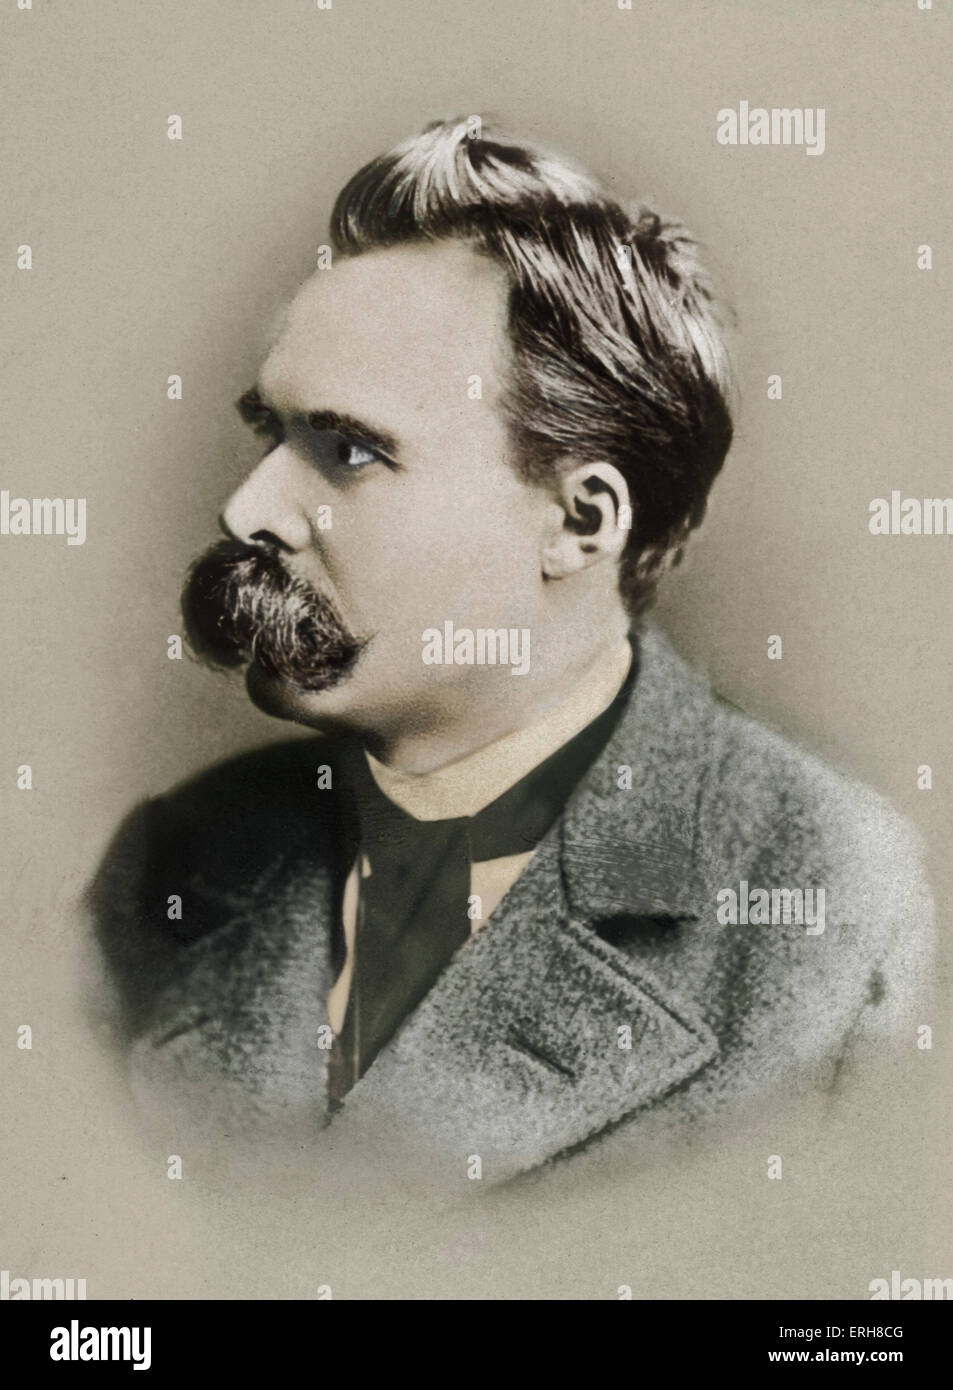 an overview of the friedrich nietzsches argument Many scholars are skeptical of claim that friedrich nietzsche wrote the will to power nietzsche was at his non-functioning state by then and the editing and authoring was probably done by his sister, elisabeth nietzsche, a proto-nazi.